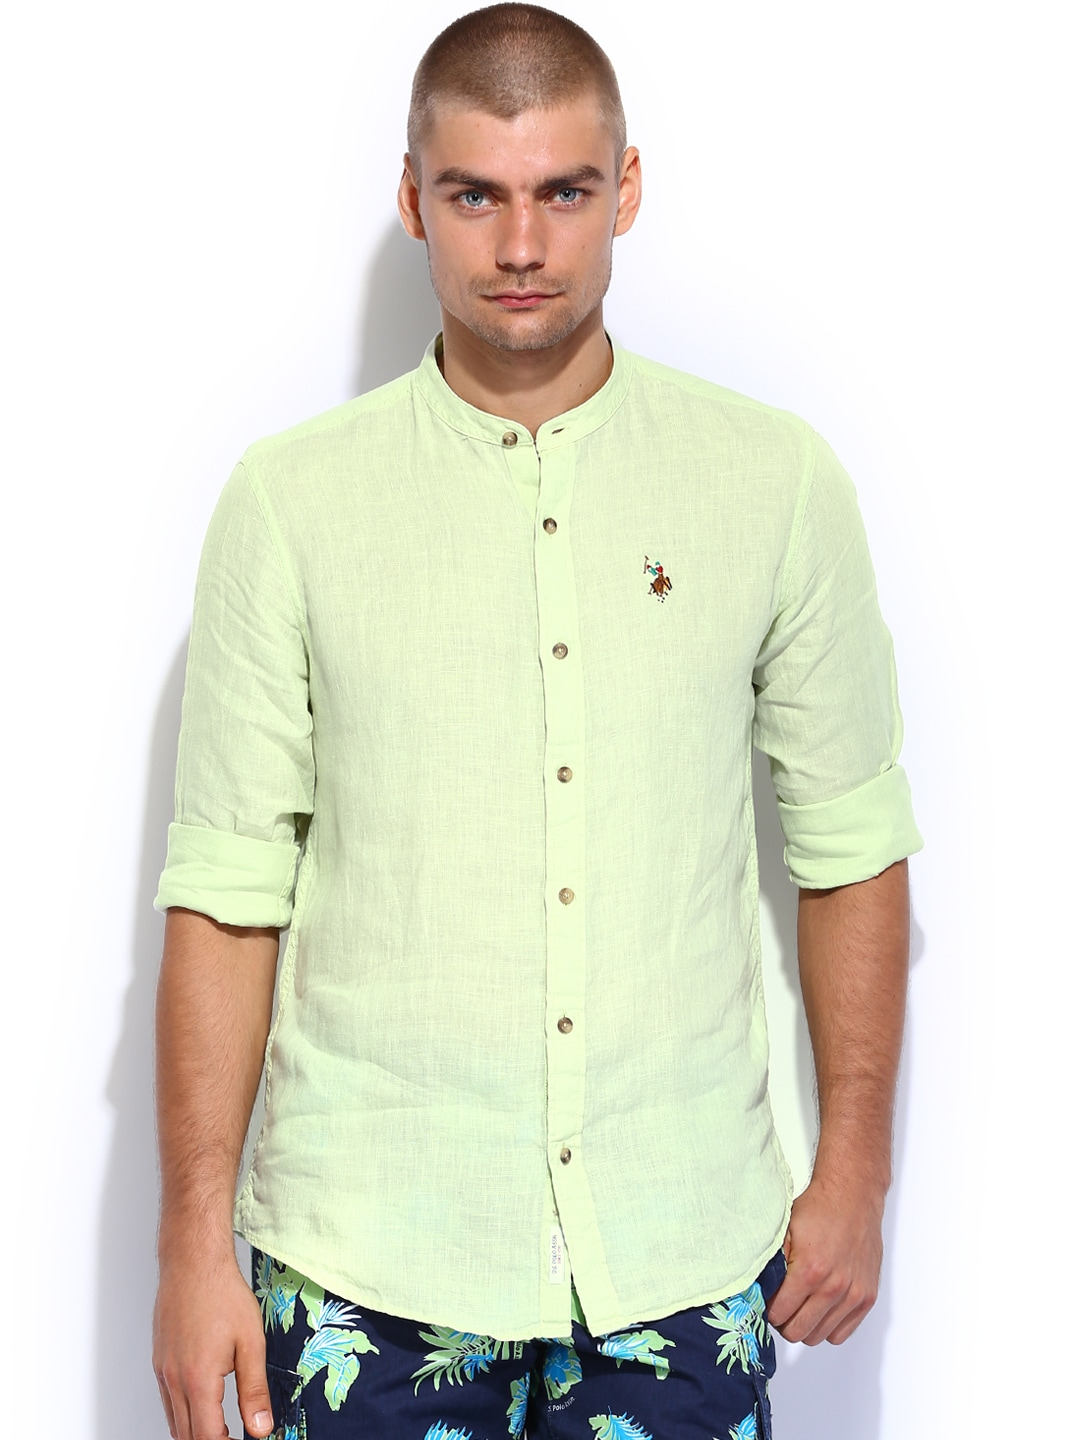 0b56f67c6 U.s. Polo Assn. Linen Shirts - Buy U.s. Polo Assn. Linen Shirts online in  India